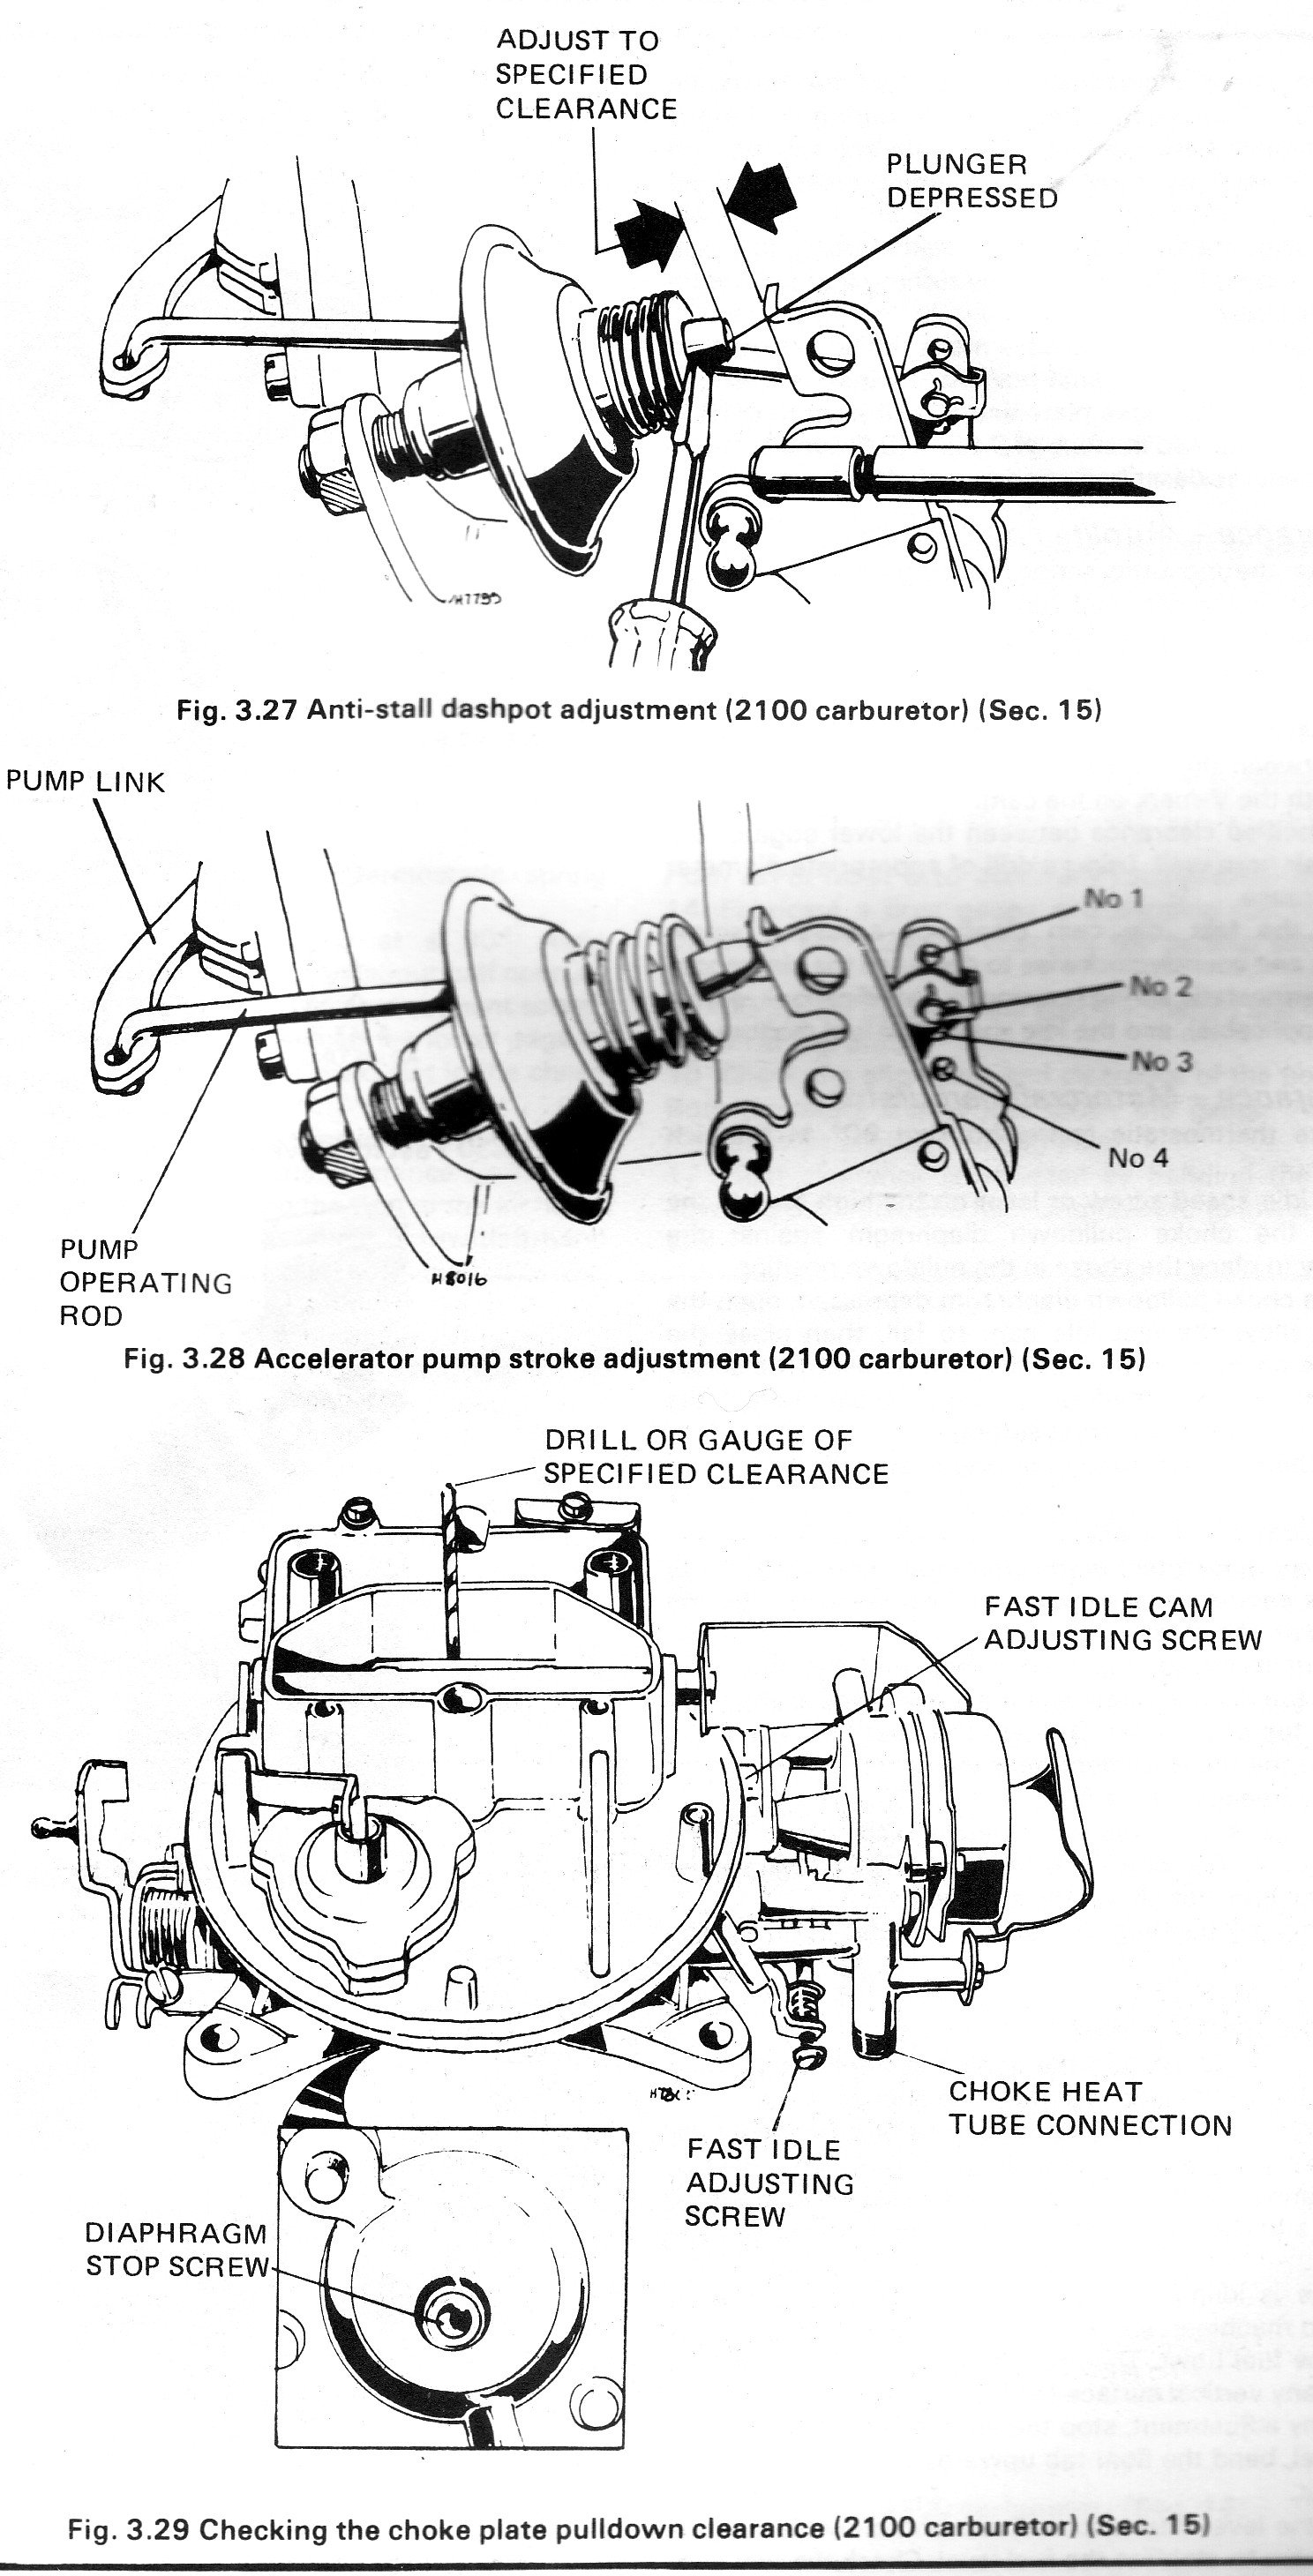 63151d1236398746 2100 carb diagram motorcraft 2100 2100 carb diagram page 2 ford mustang forum Motorcraft 2150 Carburetor Identification at cita.asia